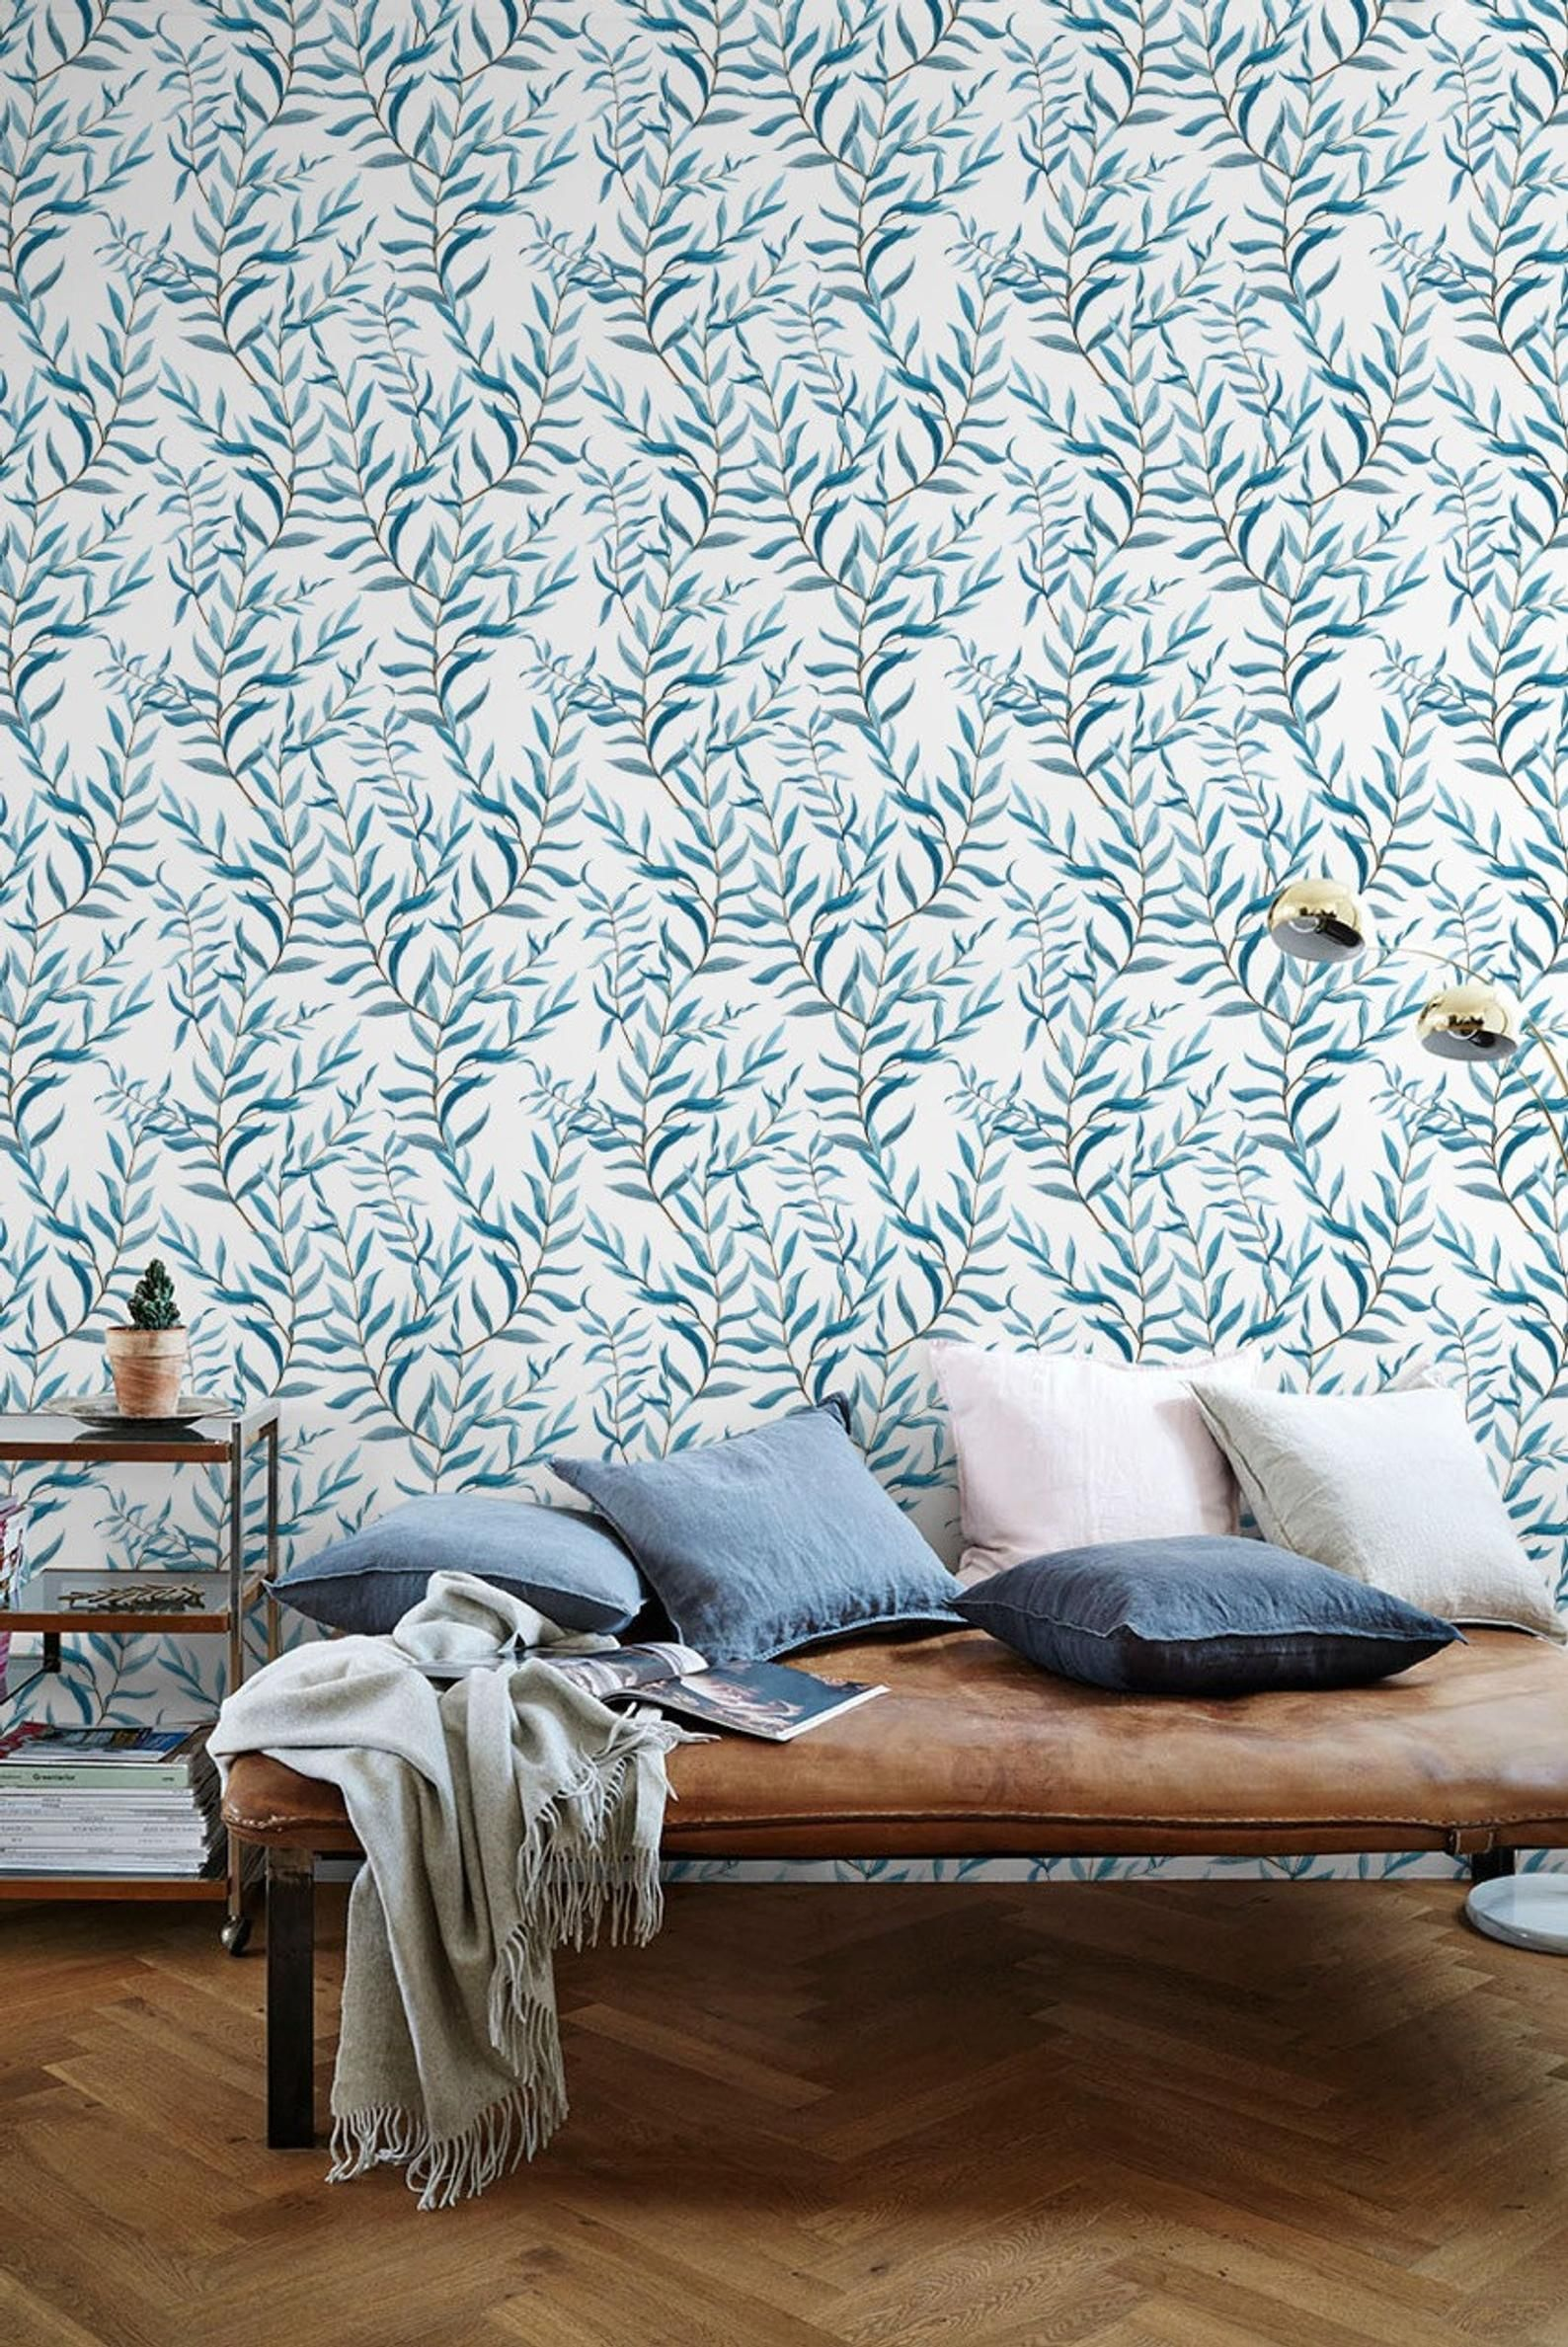 Watercolor Blue Leaf Wallpaper Removable Wallpaper Self Adhesive